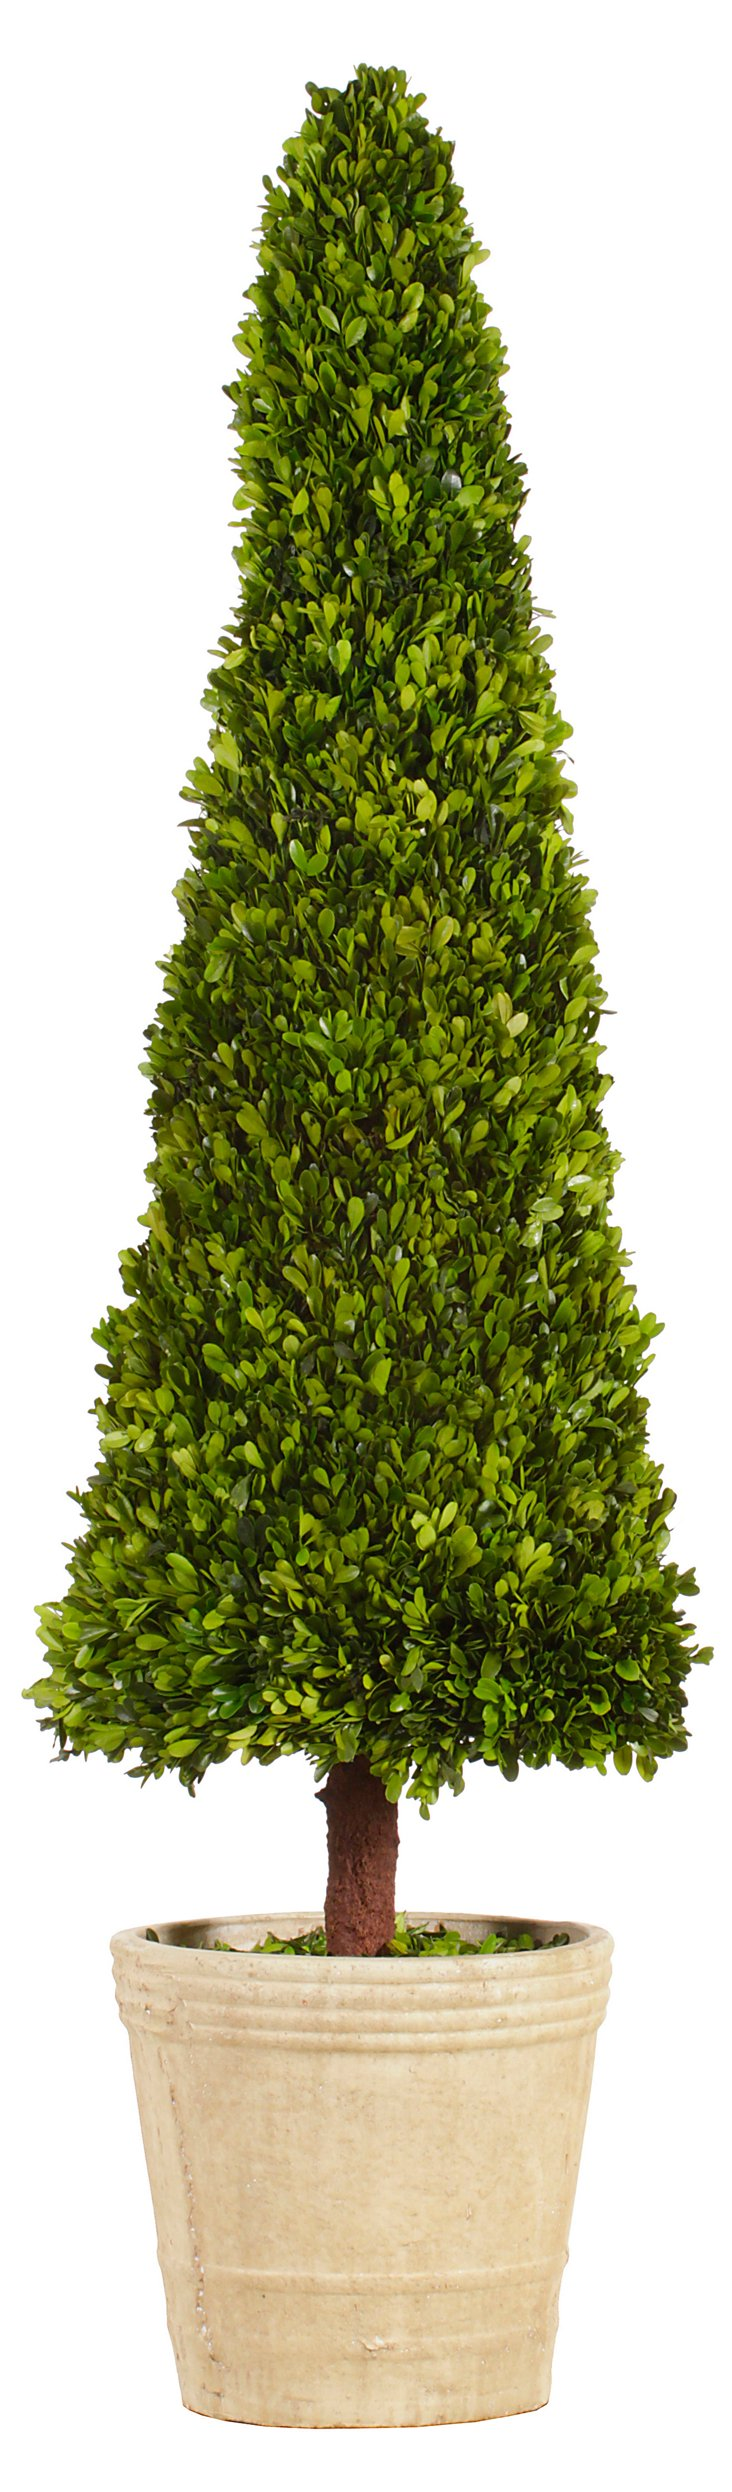 5' Boxwood Topiary in Pot, Preserved